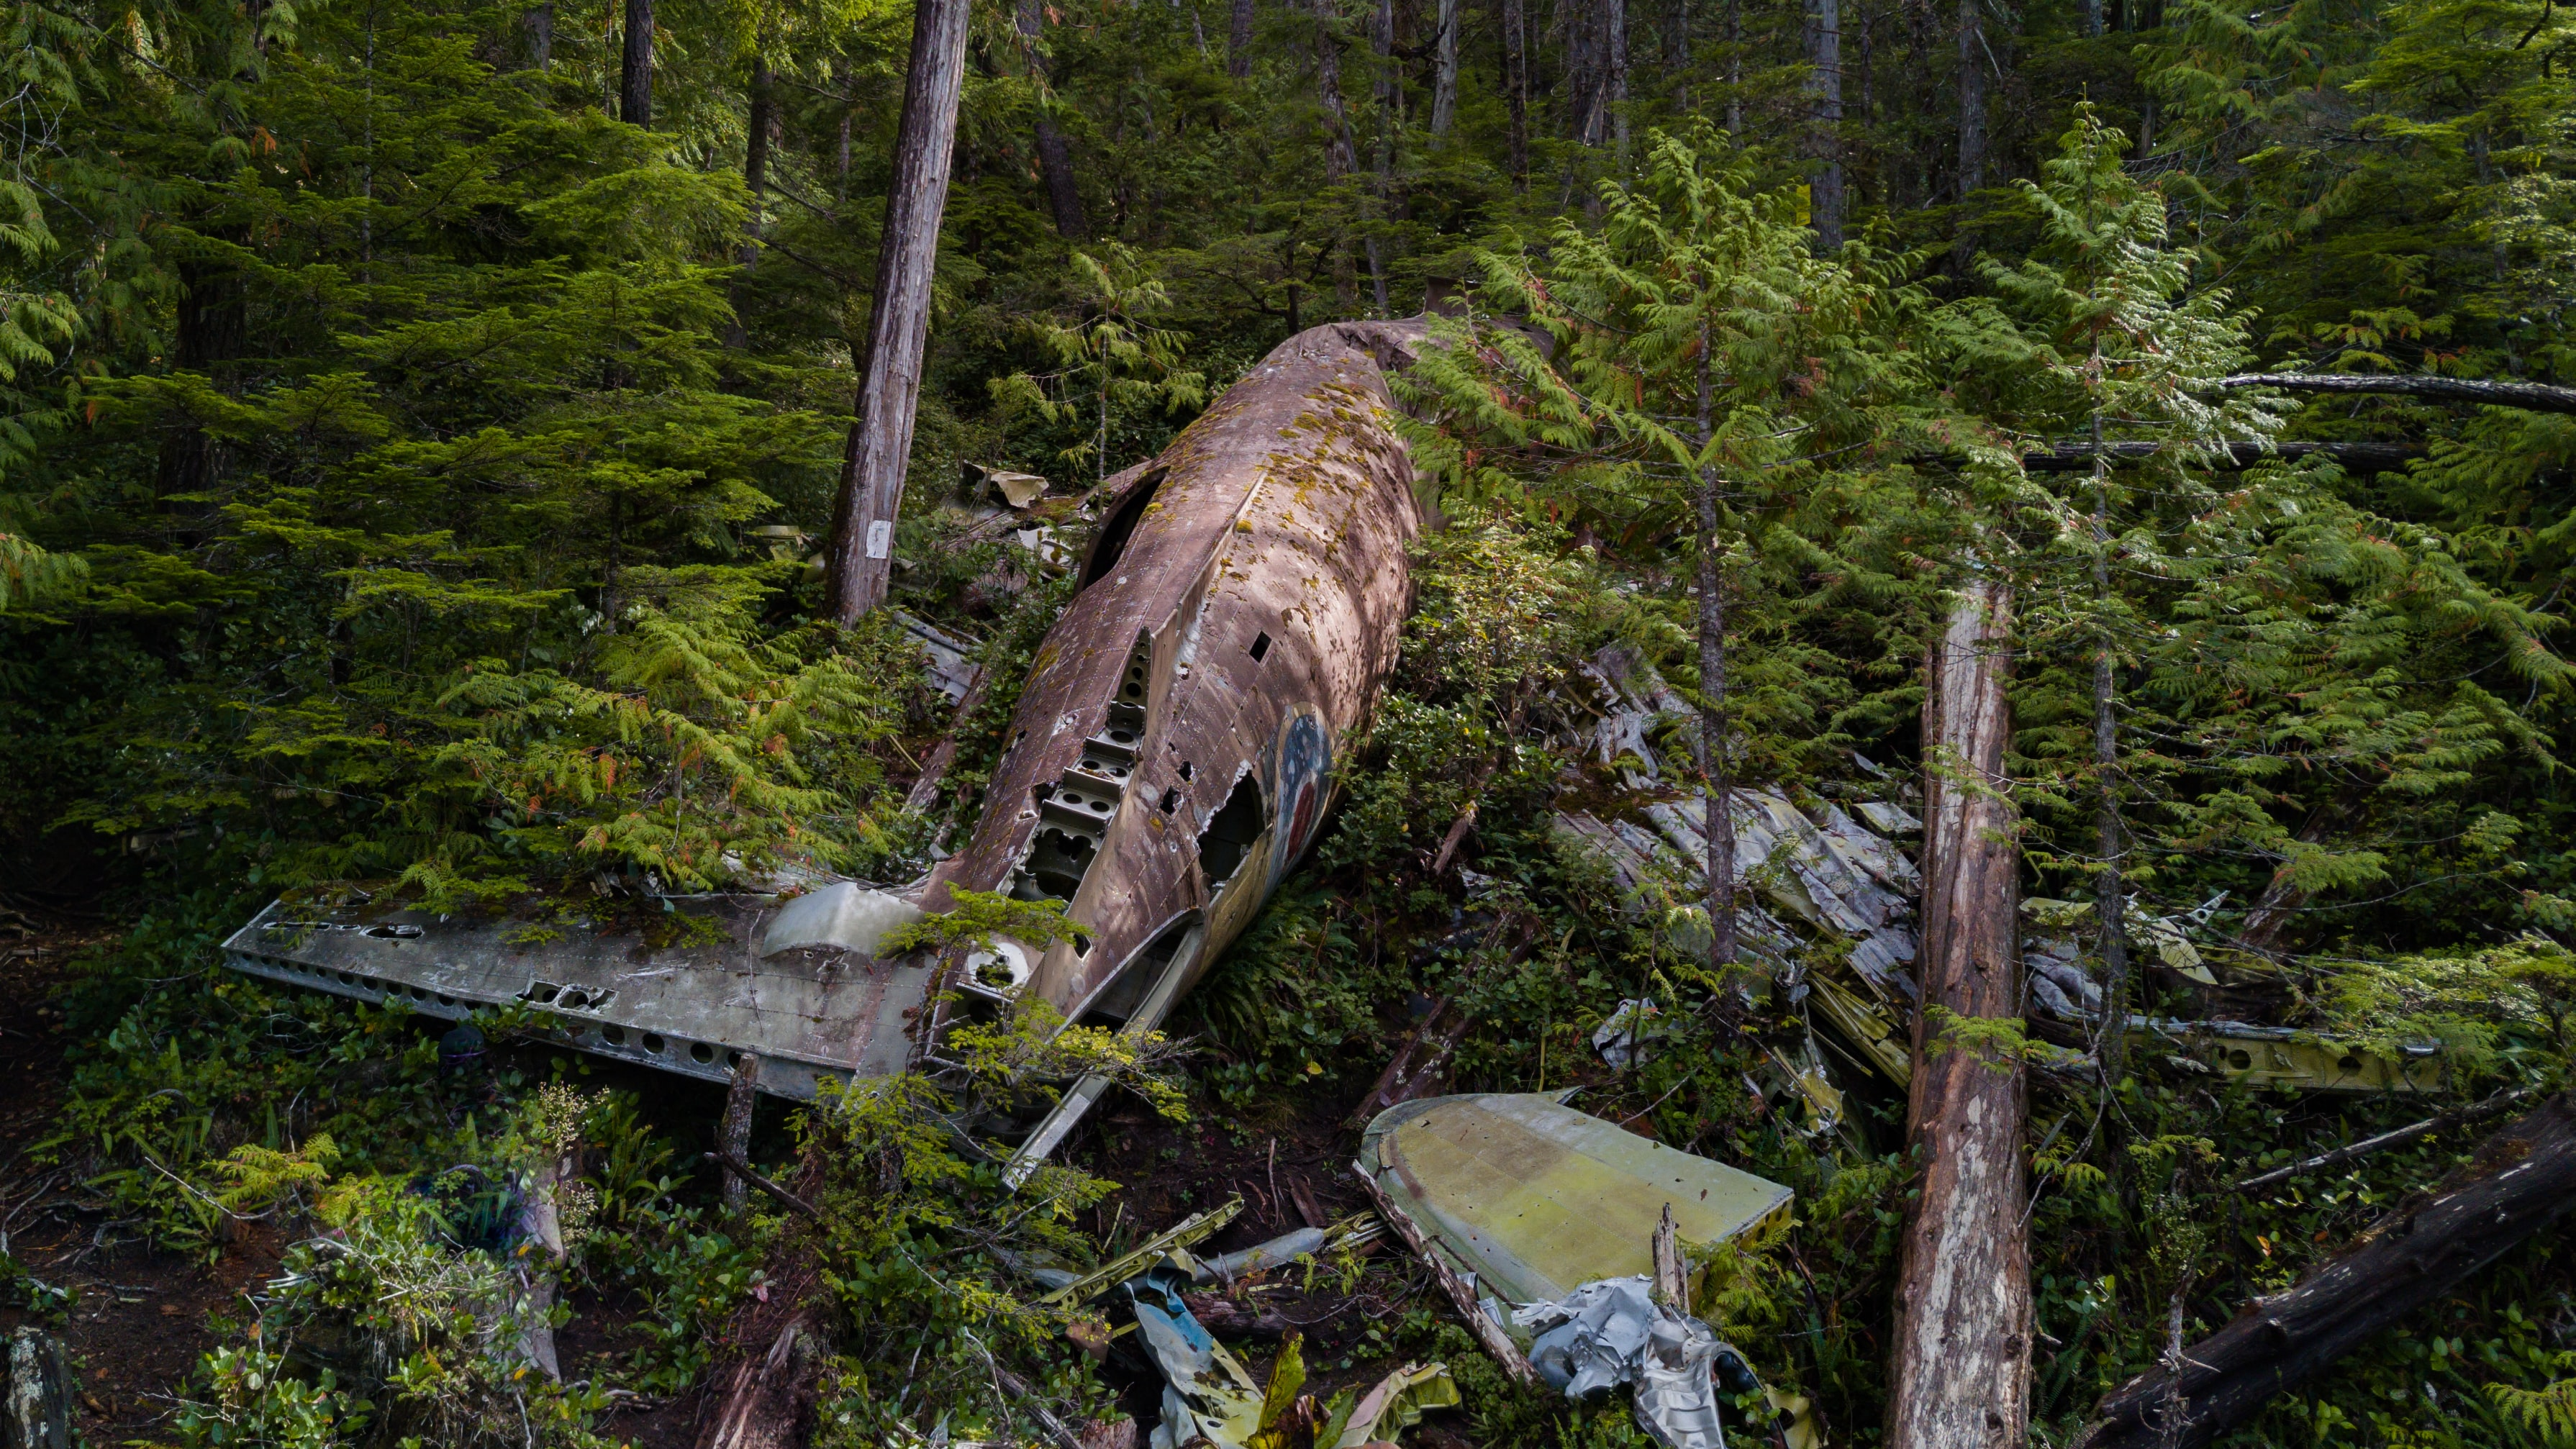 wrecked plane in forest during daytime